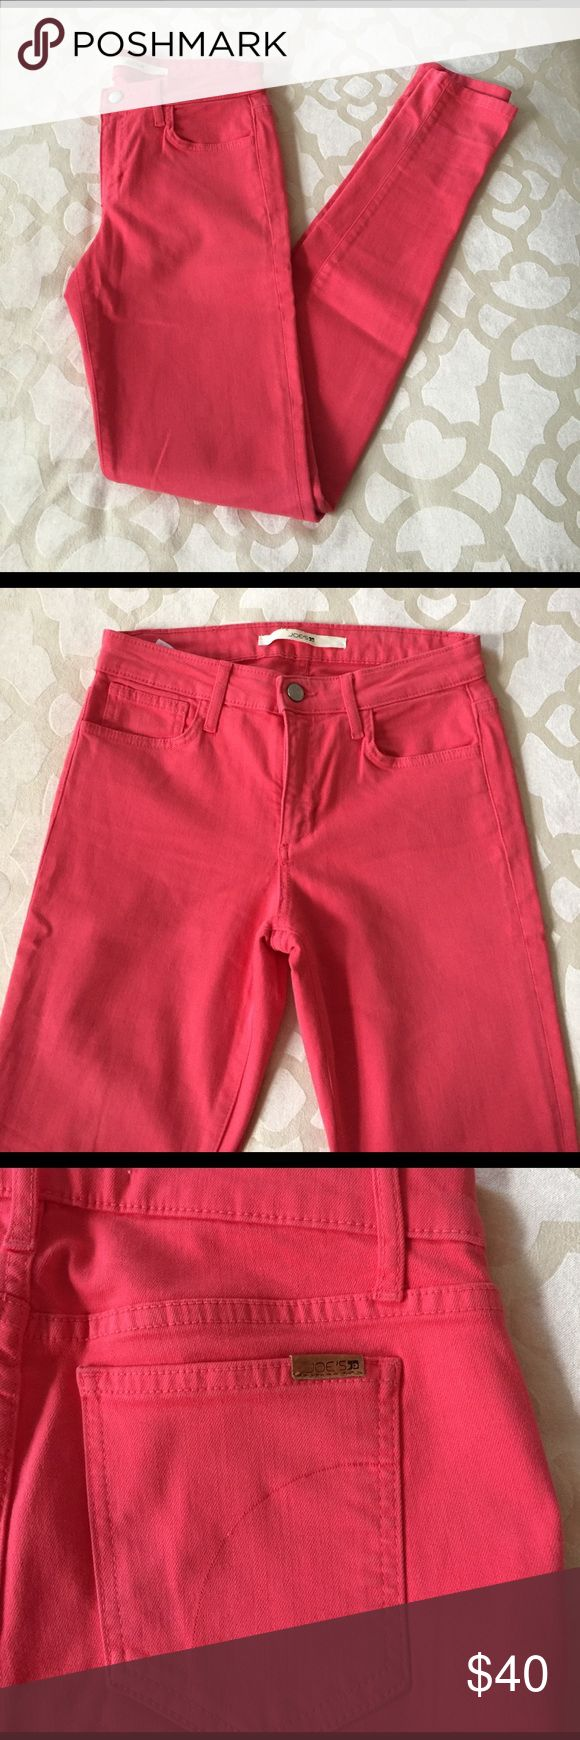 Joe's Jeans skinny coral jeans Coral jeans in perfect condition. Never hemmed so they can be cuffed to desired length Joe's Jeans Jeans Skinny